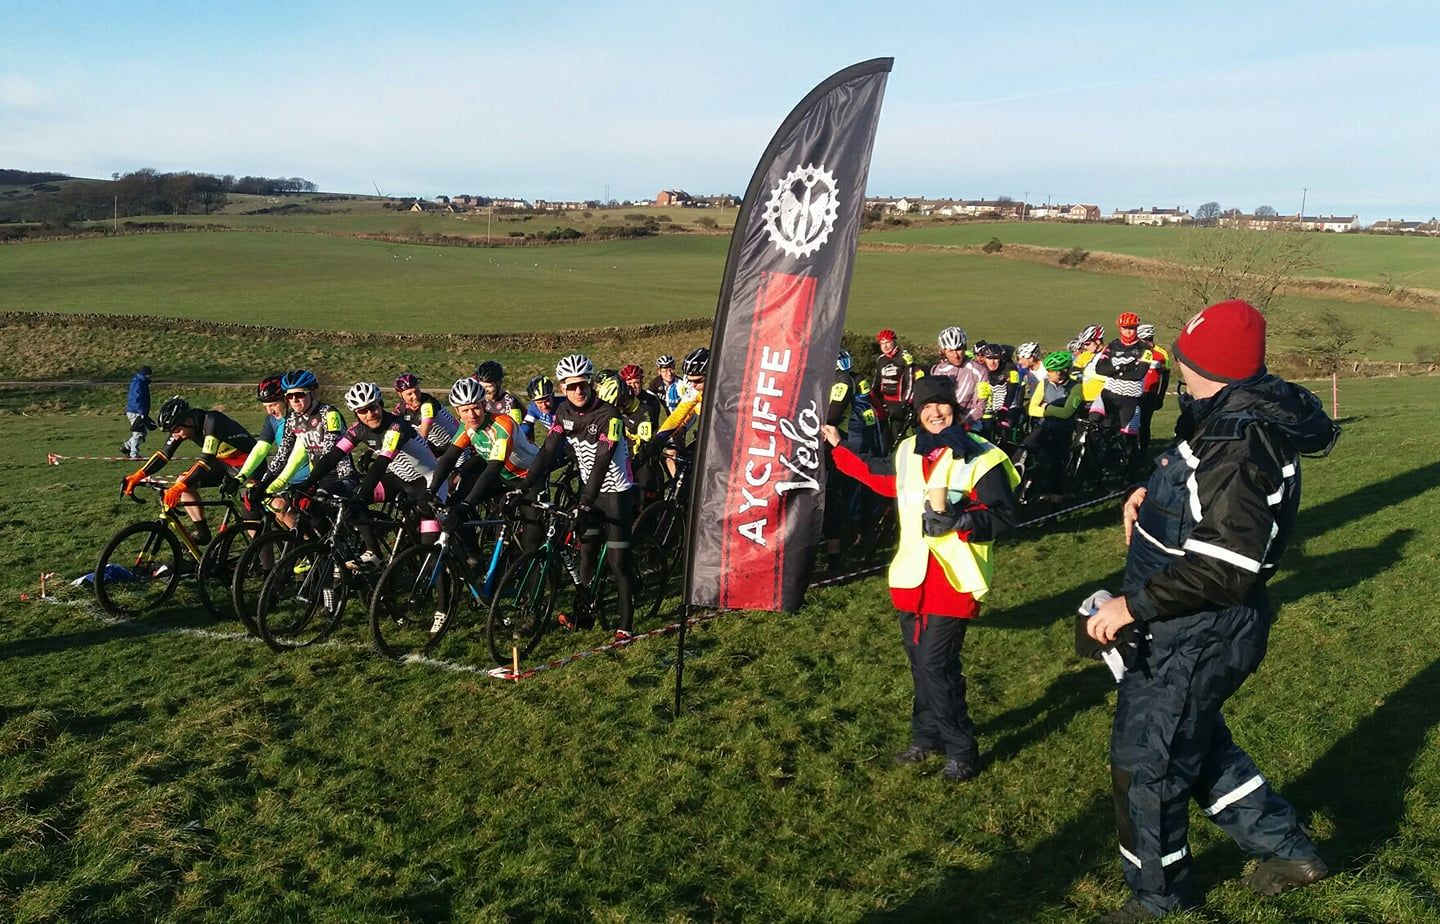 Competitors get ready for the start of the Aycliffe Velo cyclocross event near Crook Picture: AYCLIFFE VELO